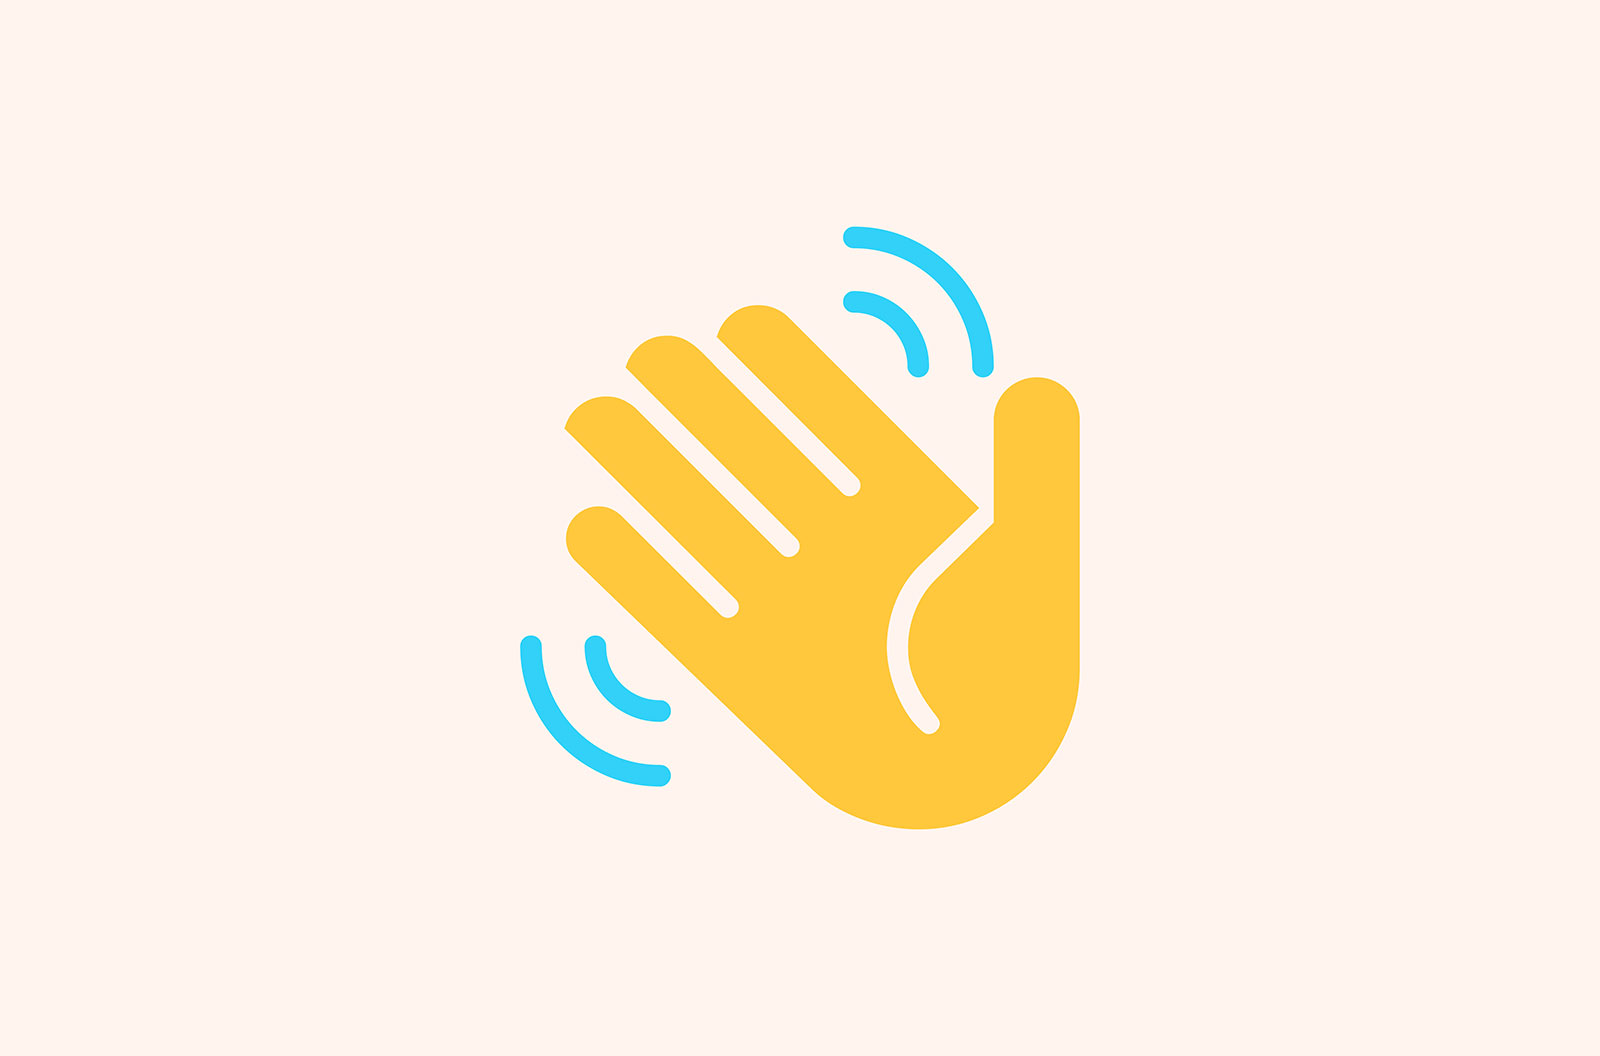 Vector icon of a waving hand